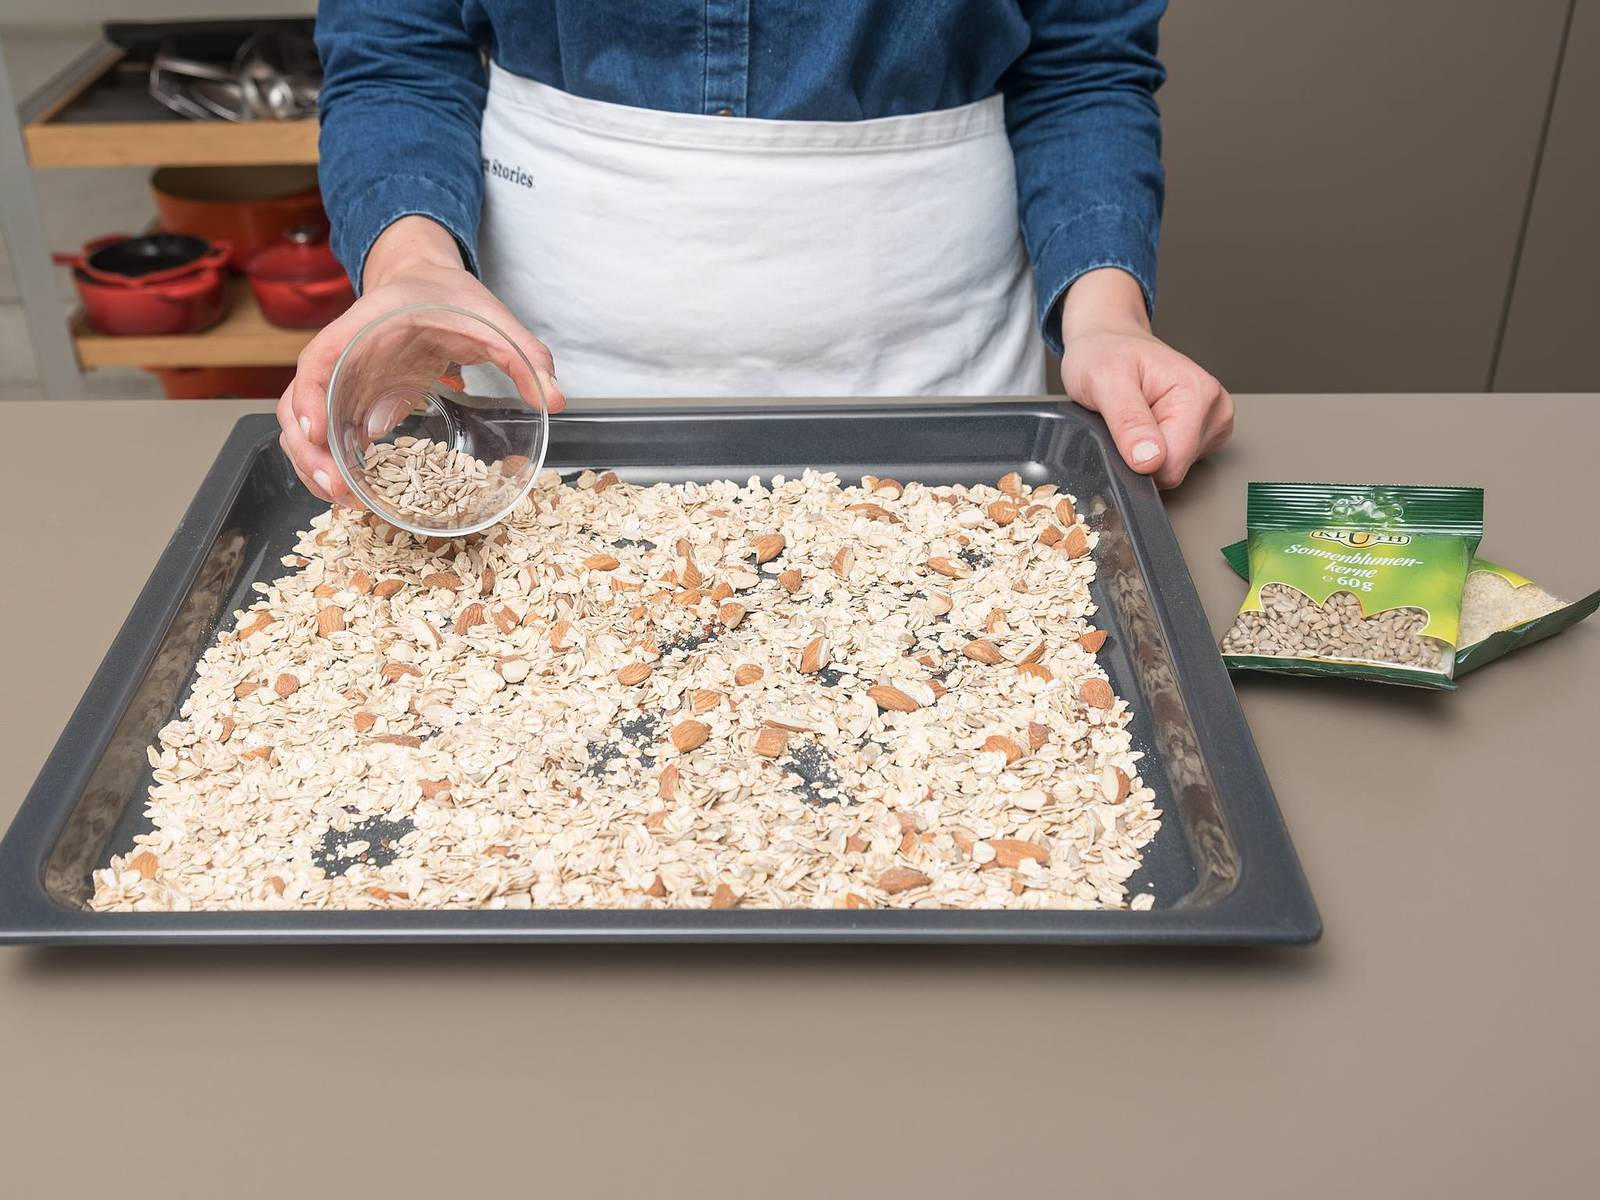 Roughly chop almonds and spread over a baking sheet with the rolled oats, flax seeds, and other nuts and seeds. Toast for approx. 12 min. on the middle rack of the oven at 180°C/350°F until golden brown and fragrant.